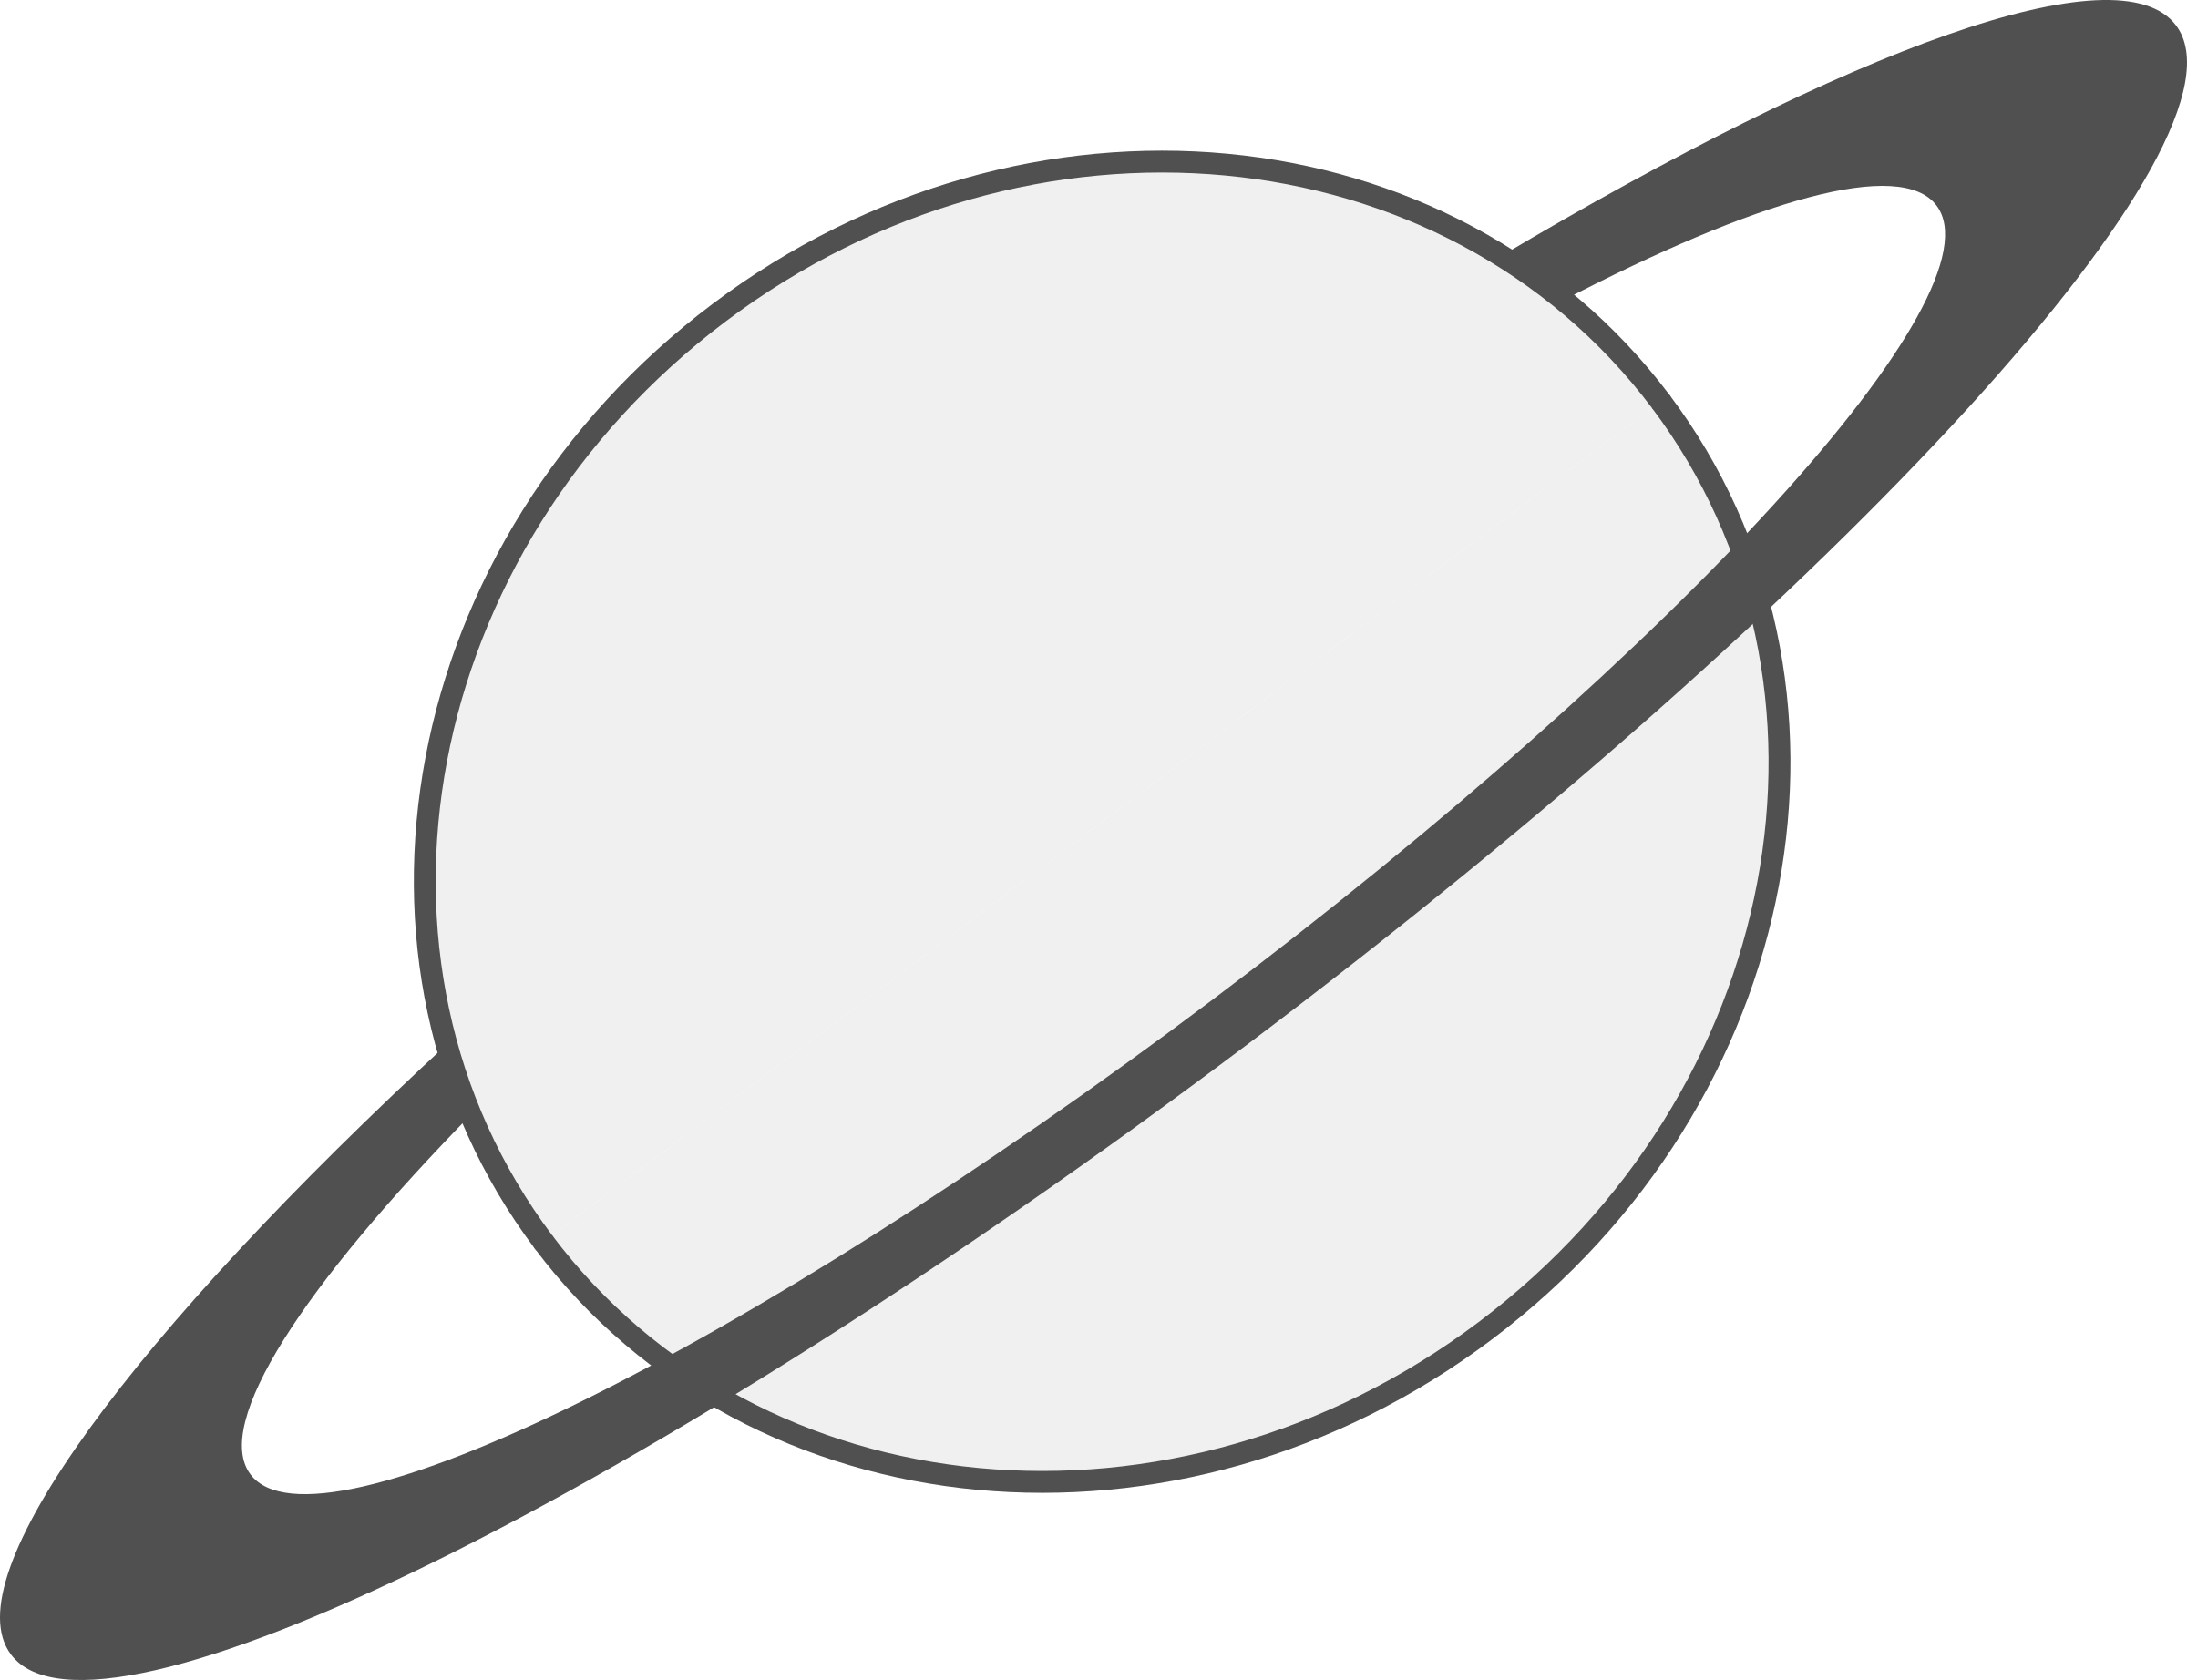 Planet clipart flashcard. Ringed frames illustrations hd